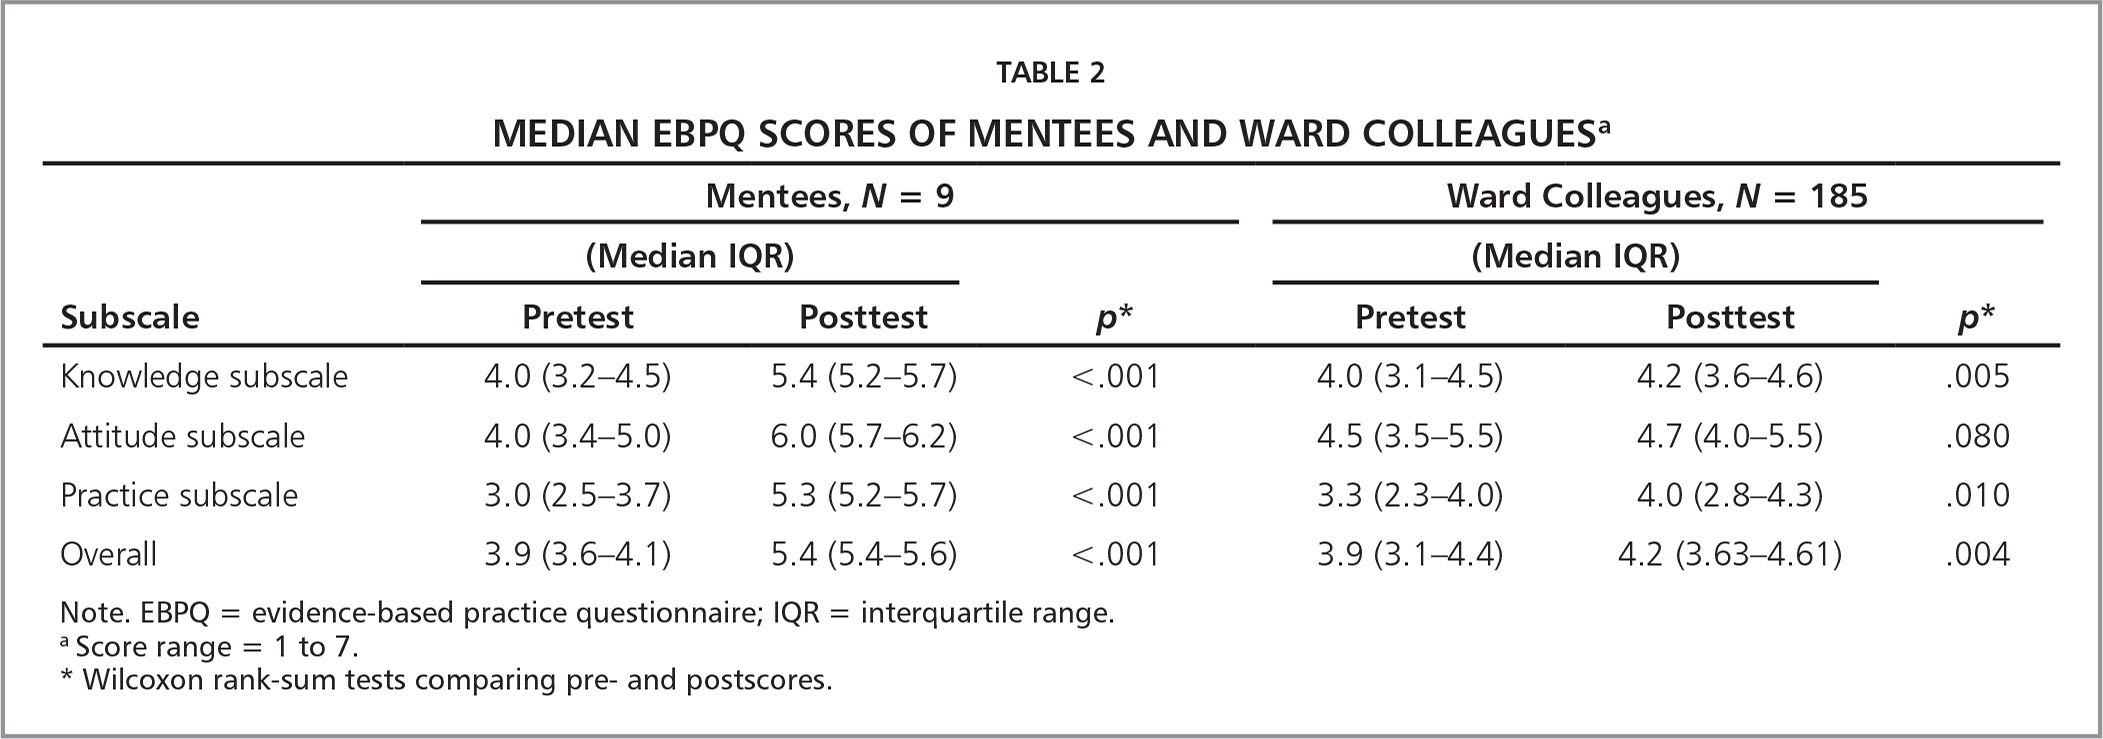 Median EBPQ Scores of Mentees and Ward Colleaguesa